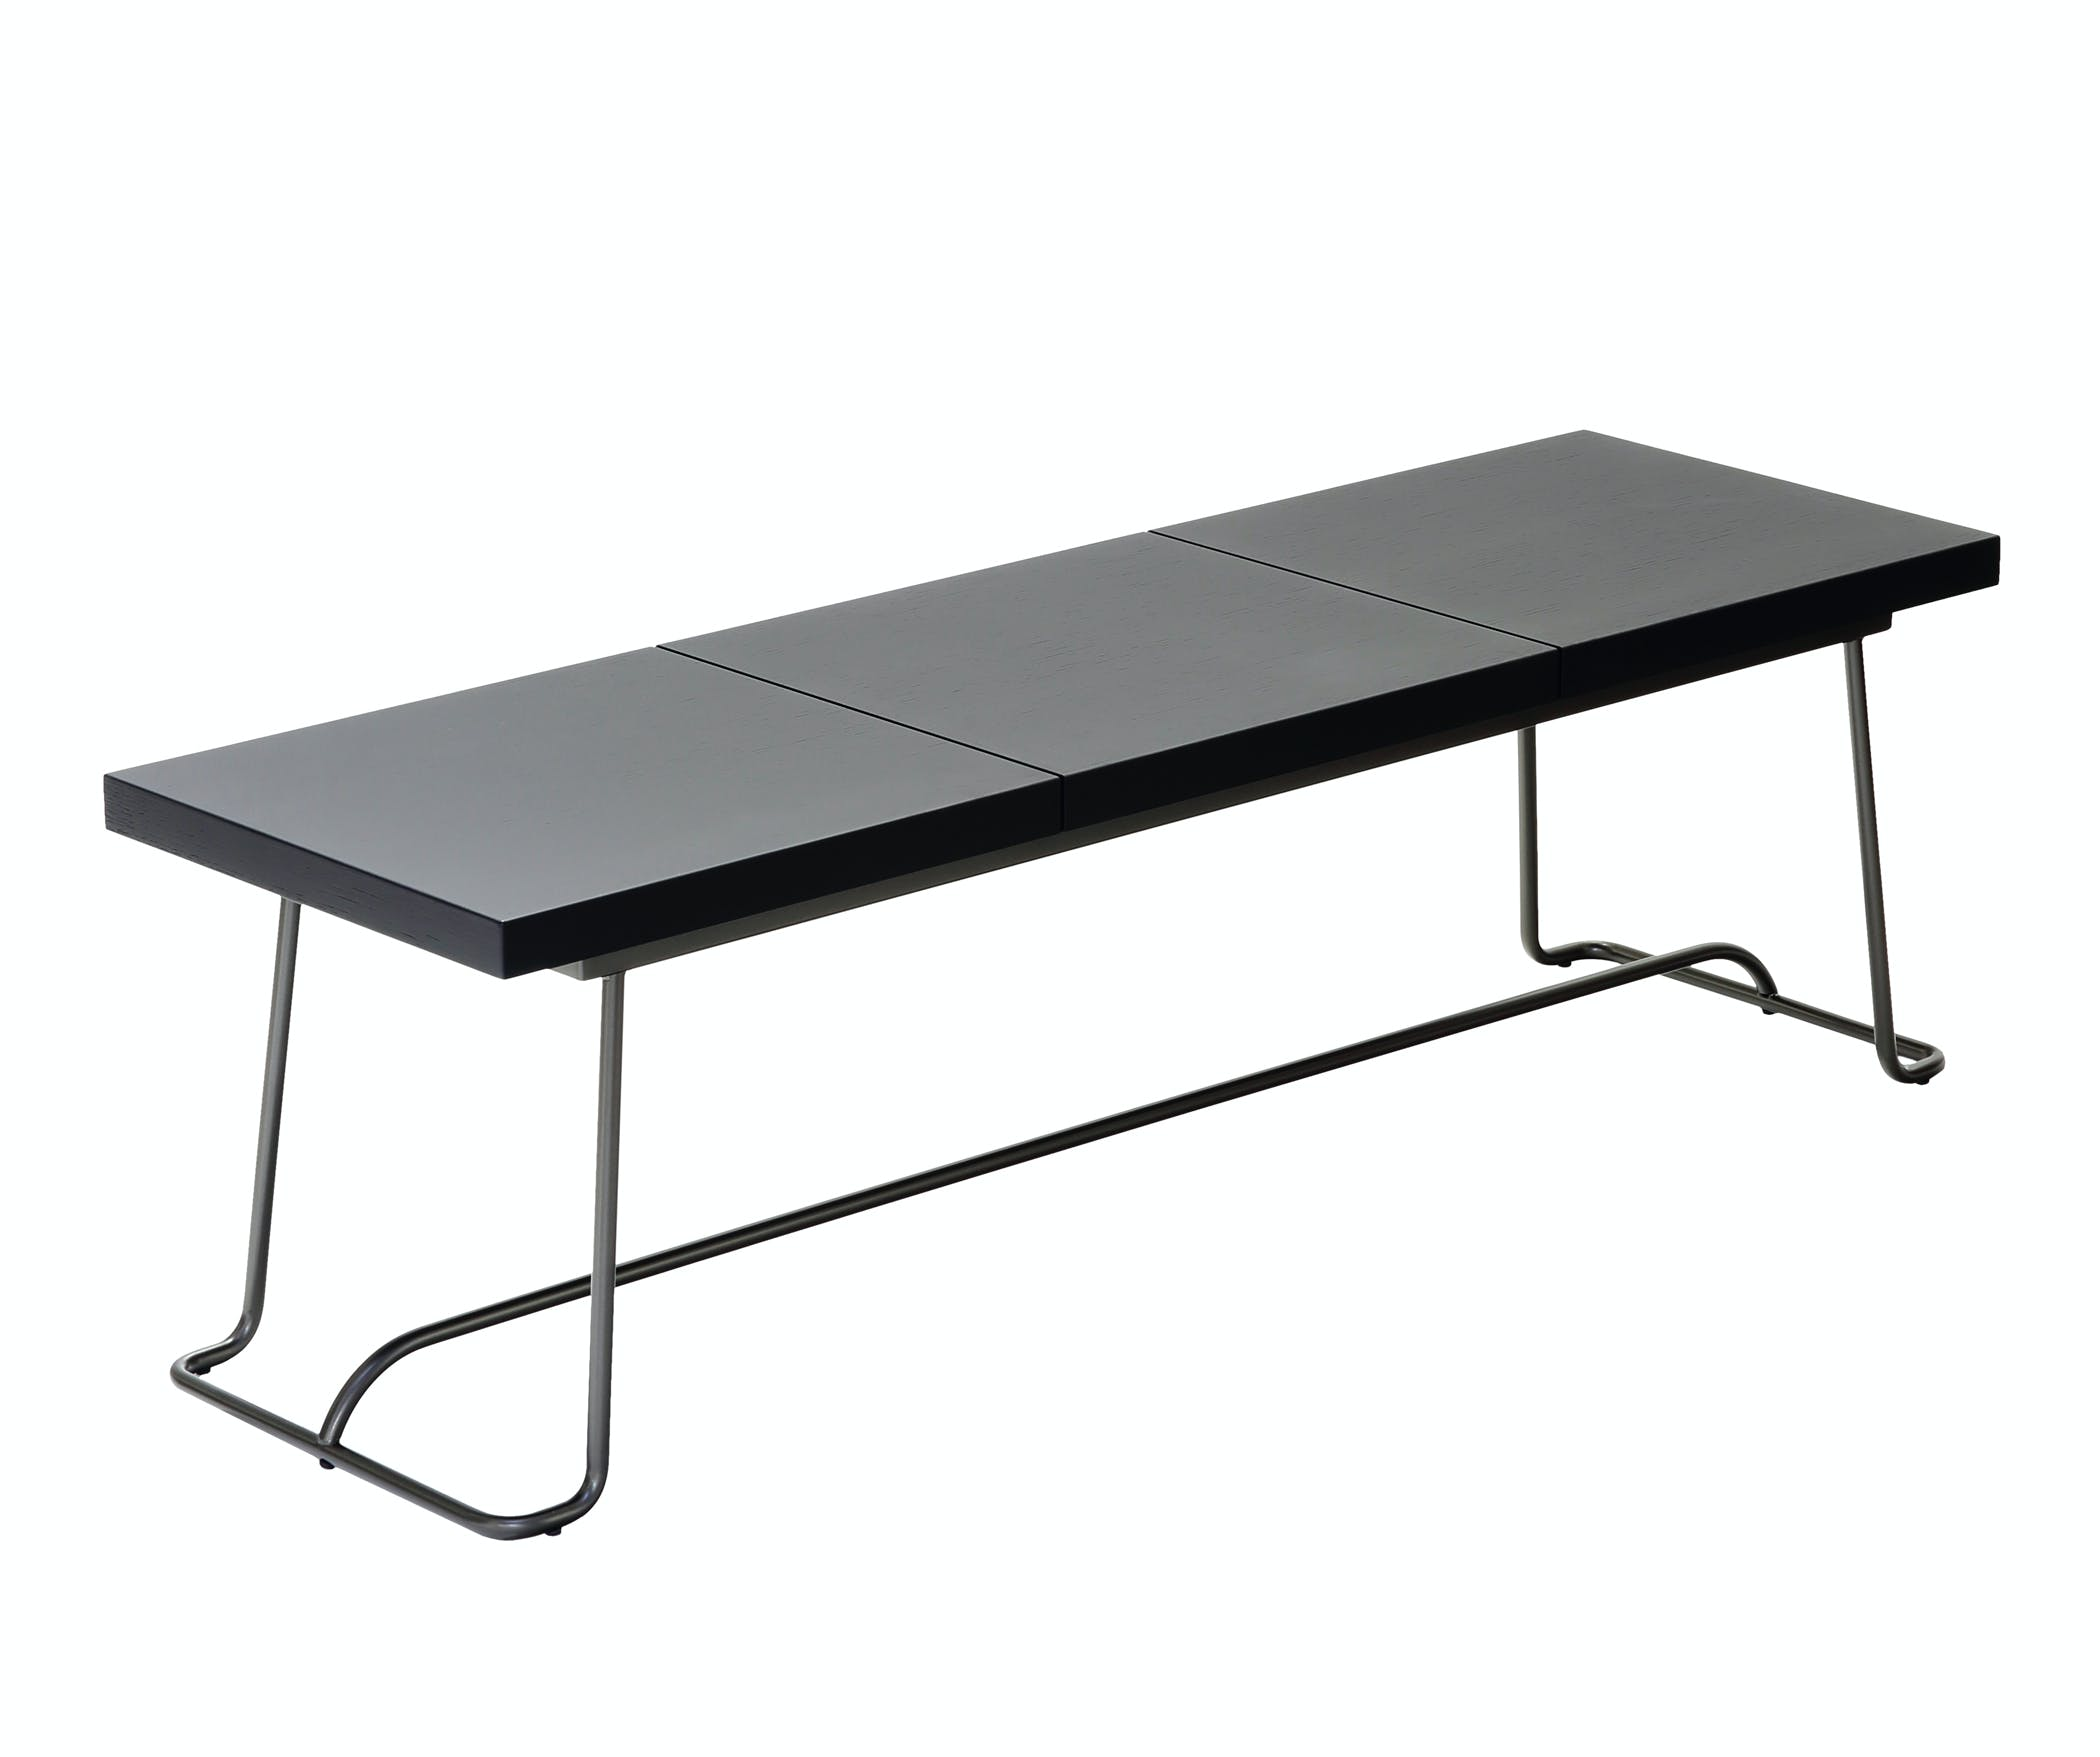 Banc Brera Design M Zanuso Jr Coedition